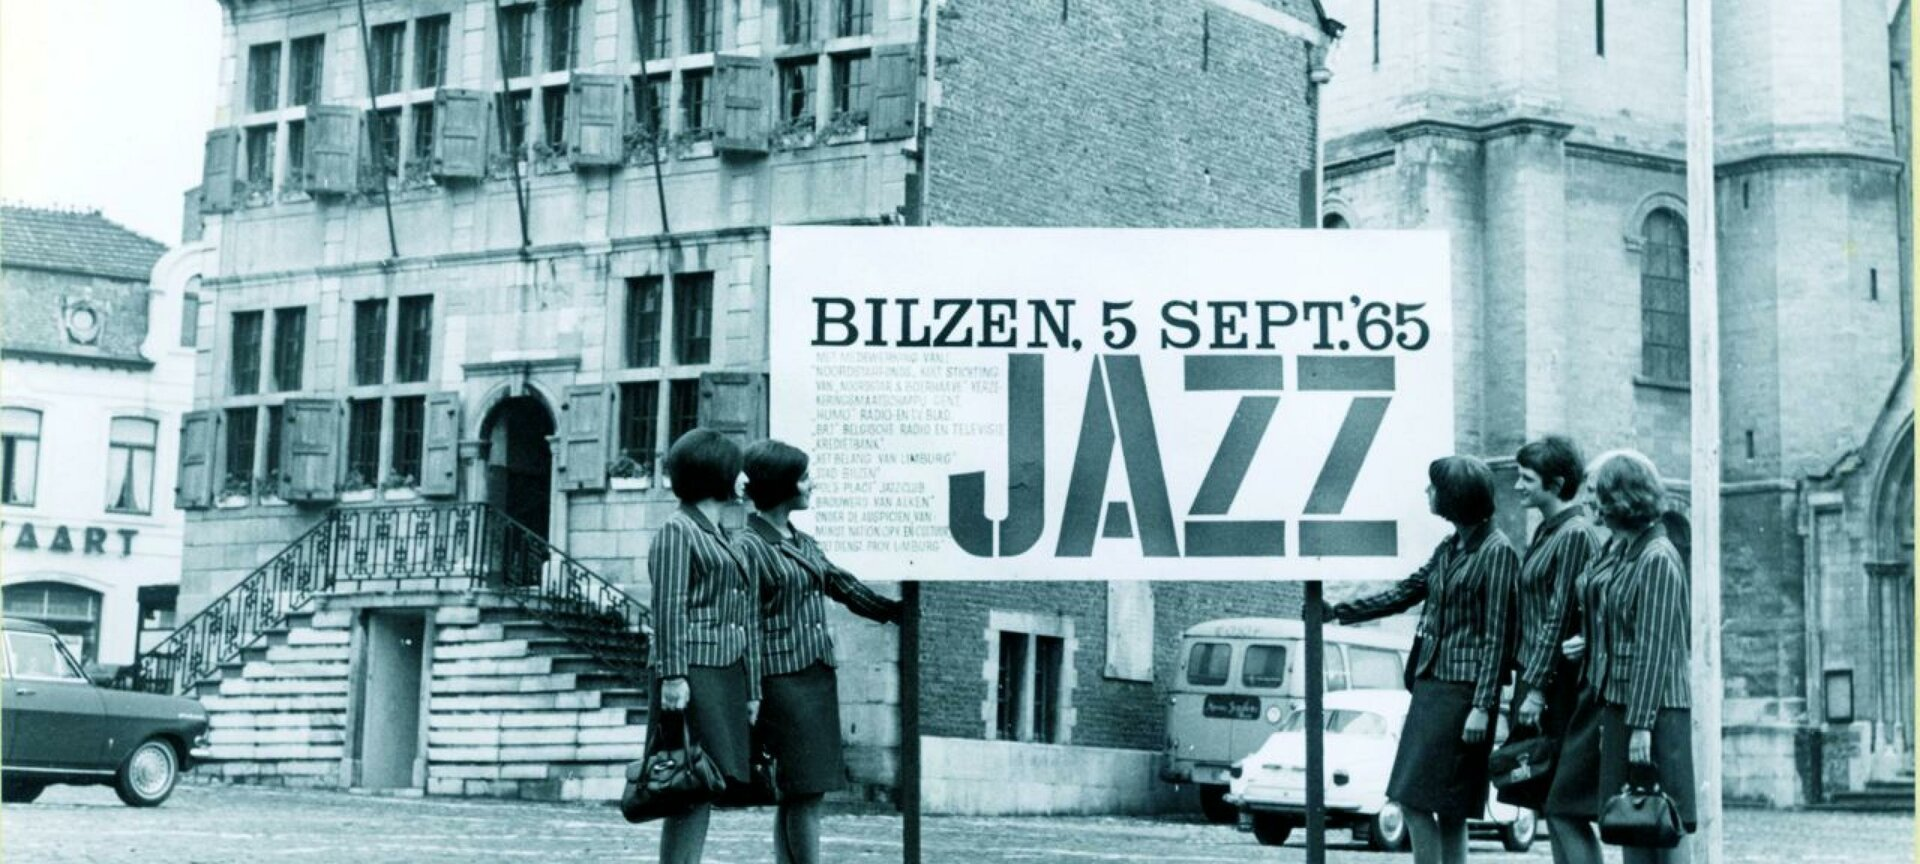 Jazz Bilzen: The Stage - Jazz Bilzen Retro